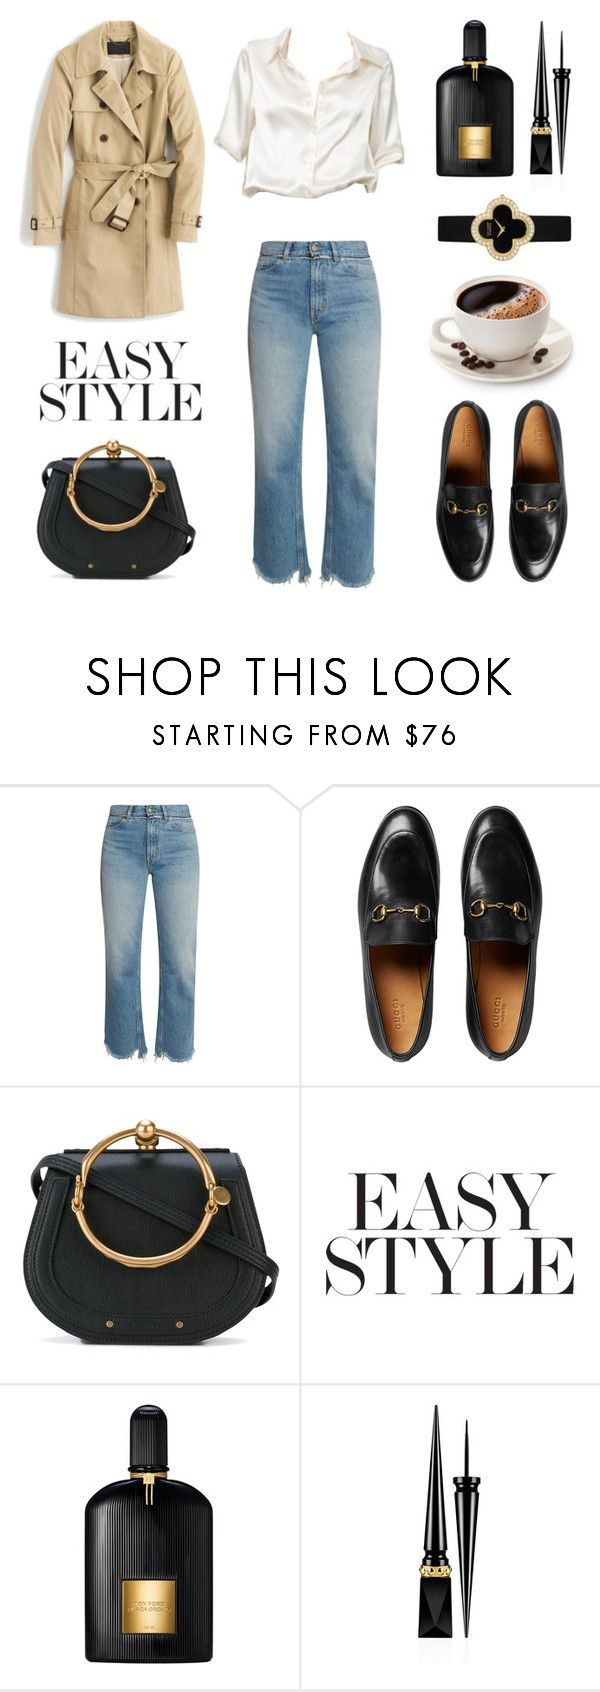 """Untitled #620"" by tenindvr ❤ liked on Polyvore featuring Golden Goose, Brandy Melville, Gucci, Chloé, Tom Ford, Christian Louboutin and Van Cleef & Arpels"